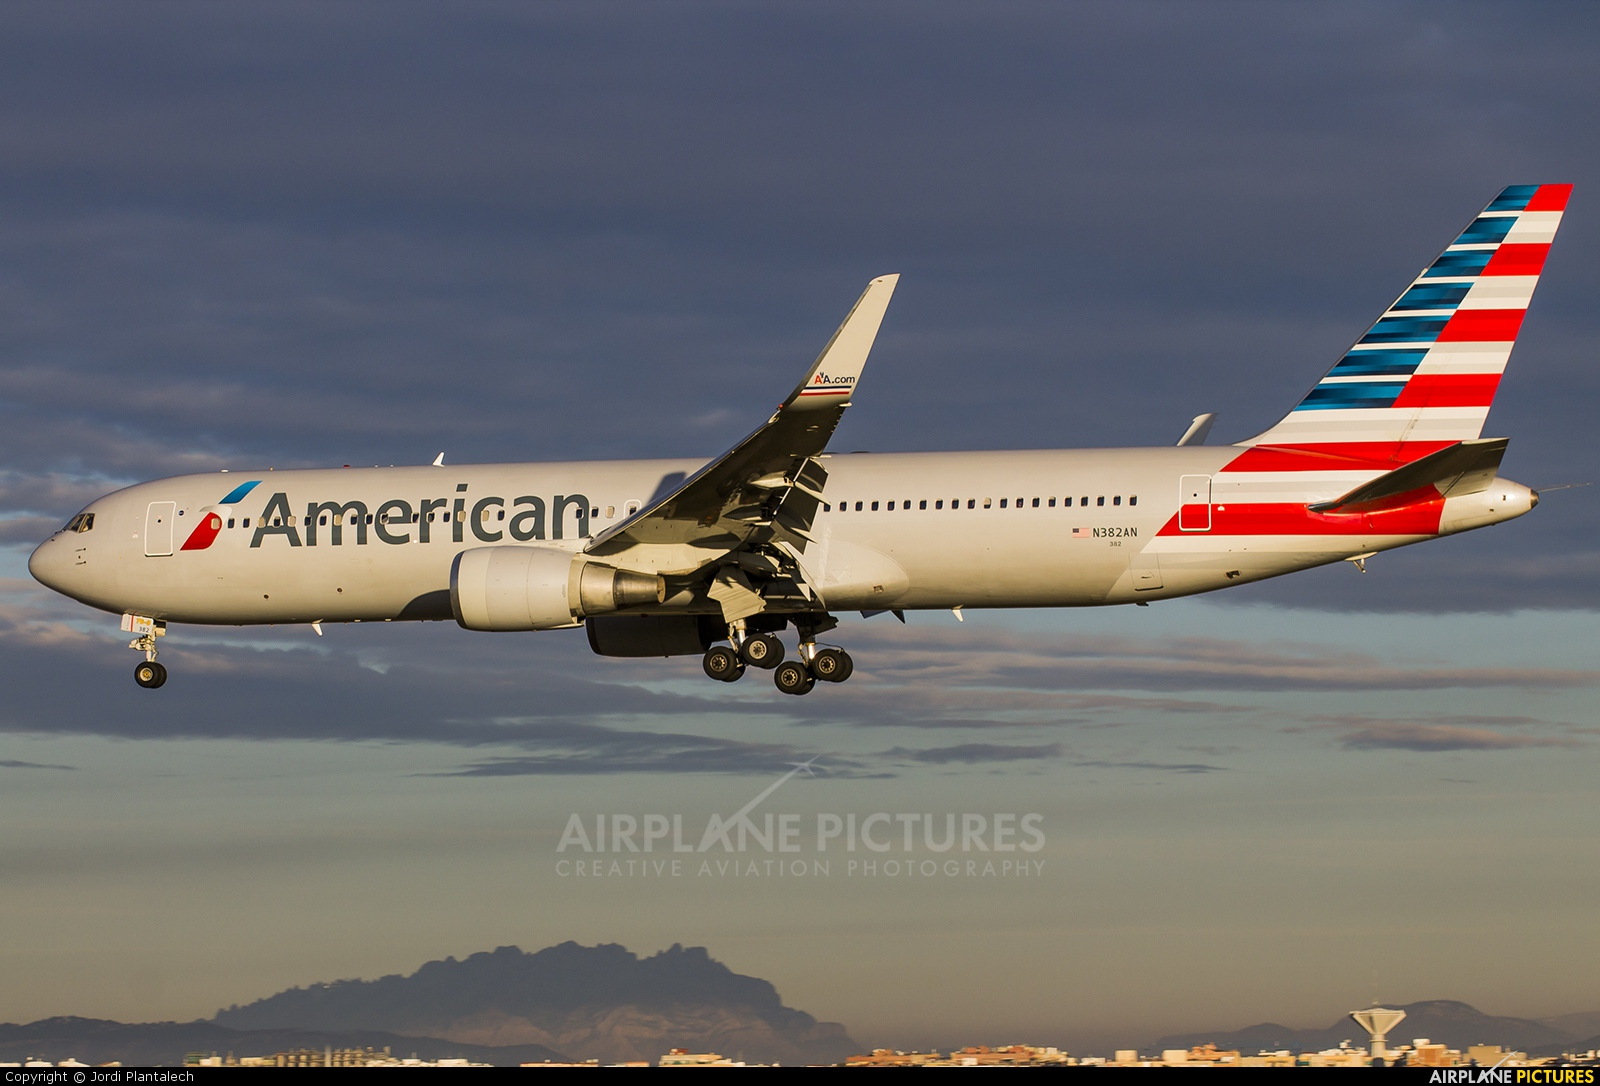 N382AN - American Airlines Boeing 767-300ER at Barcelona ...